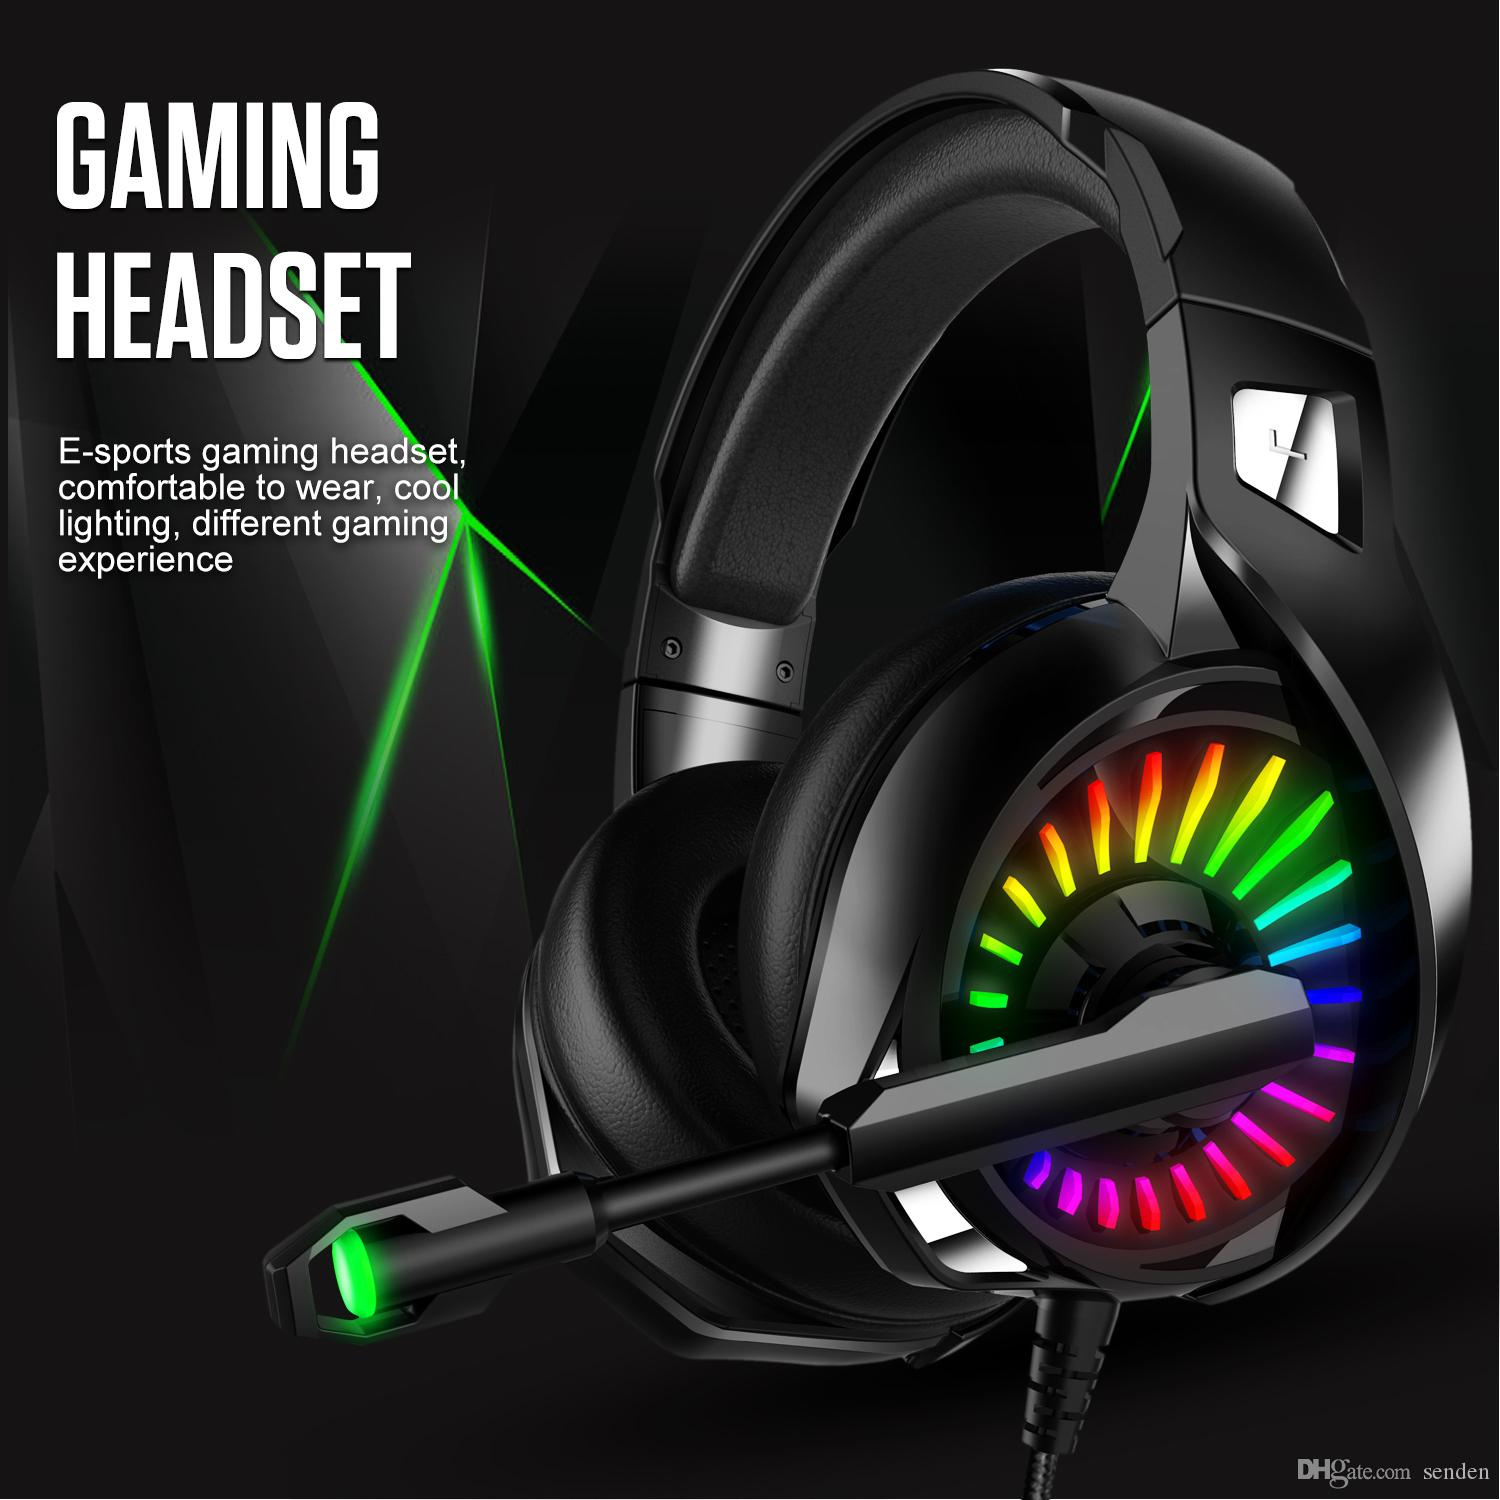 Luminous Gaming Headphones 4d Stereo Rgb Marquee Headset With Microphone For Ps4 Xbox One Laptop Computer Tablet Gamer Earphones Light Up Bluetooth Headphones For Running Cheap Headphones From Senden 16 09 Dhgate Com